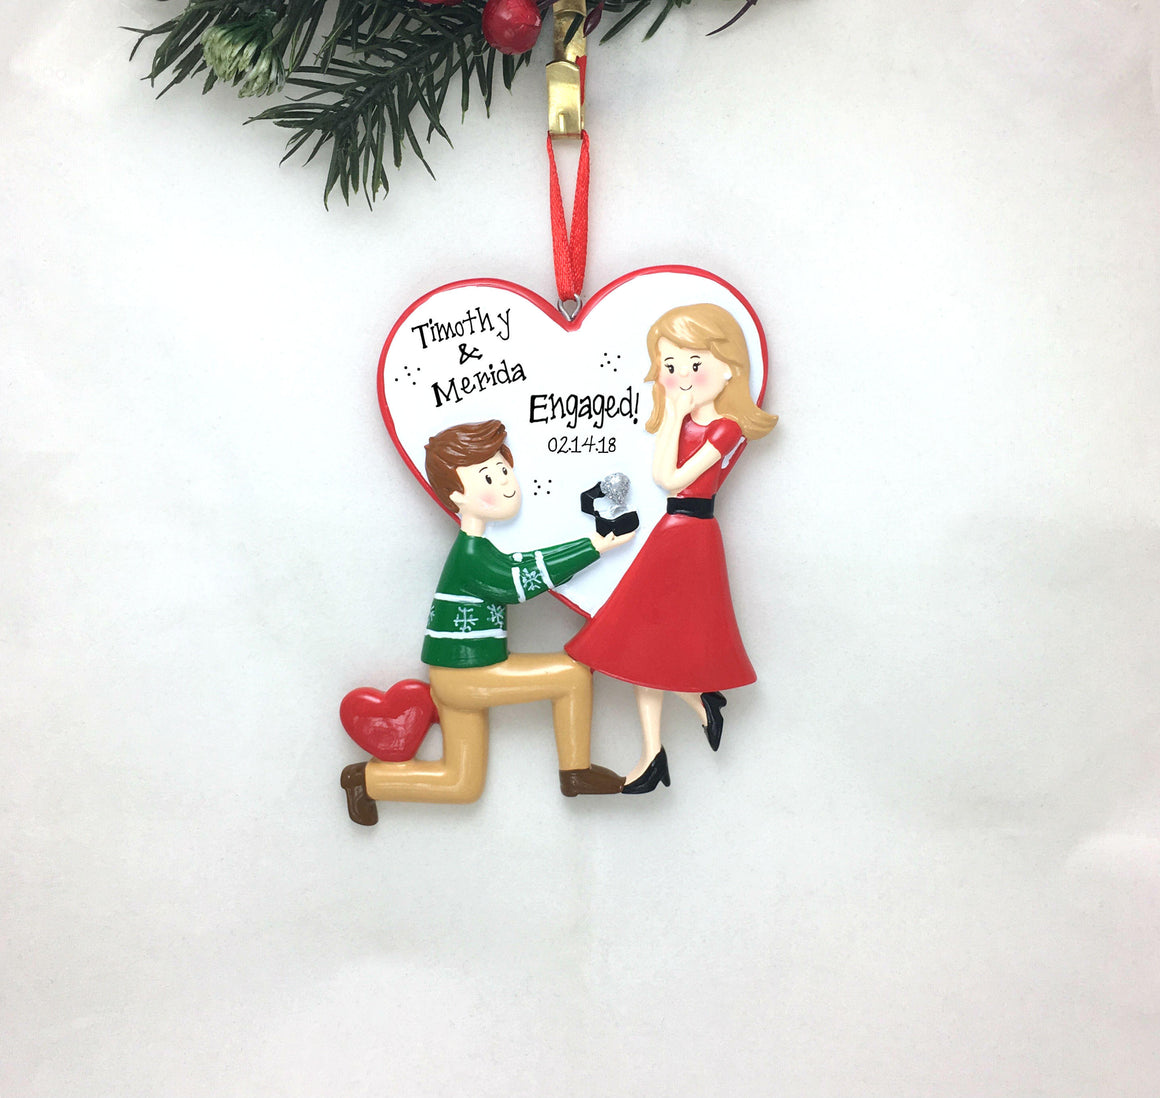 Engagement Personalized Christmas Ornament / Proposal Ornament / Engaged Couple / Our First Christmas